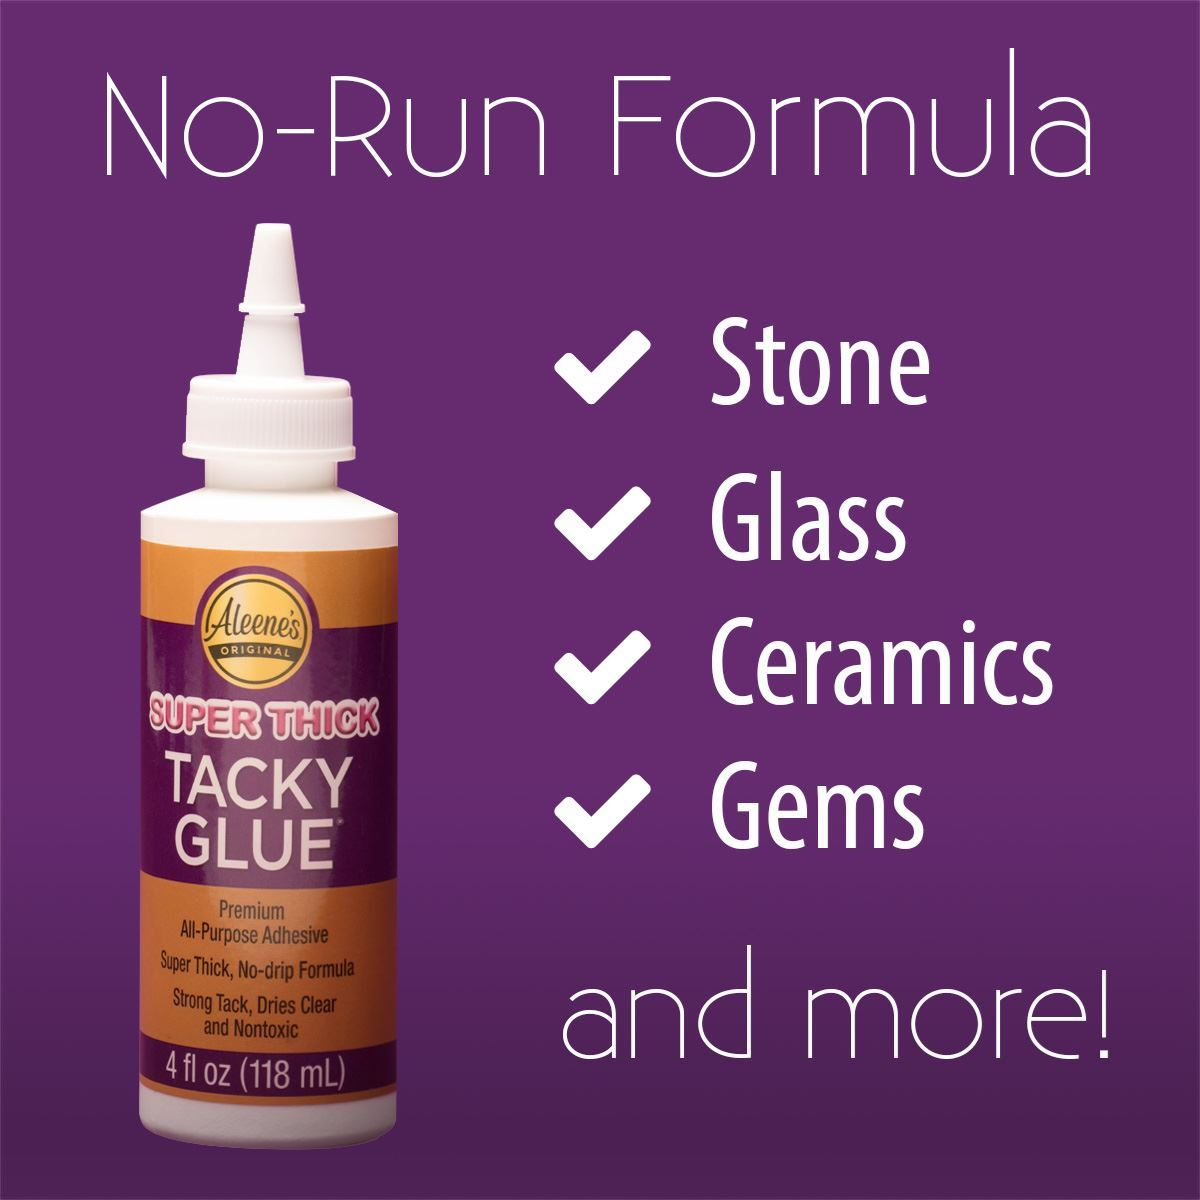 Aleene's® Super Thick Tacky Glue